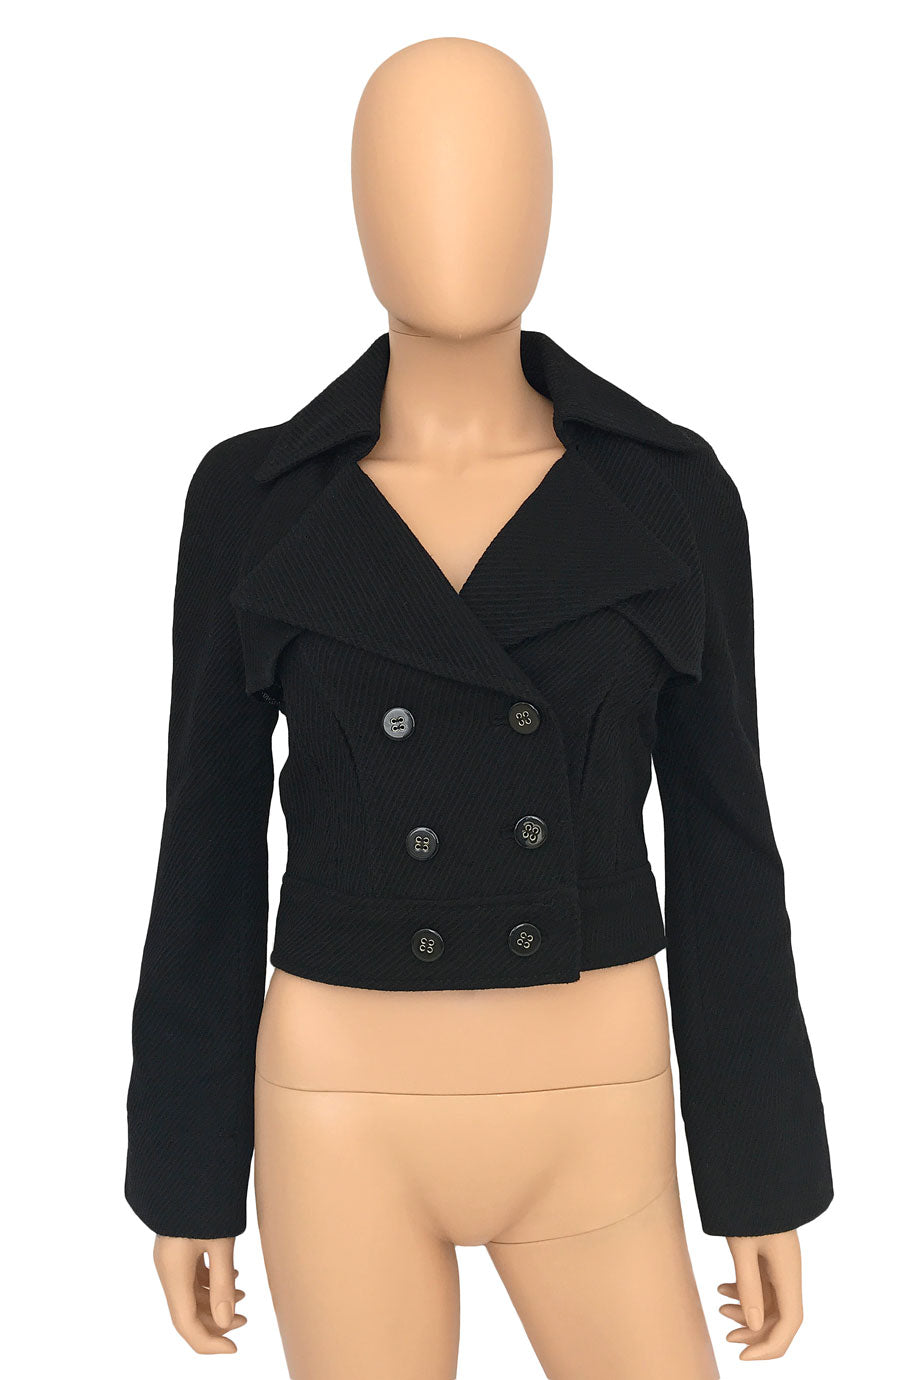 Catherine Malandrino Black Wool Double Breasted Jacket / Sz 2-Style Therapy